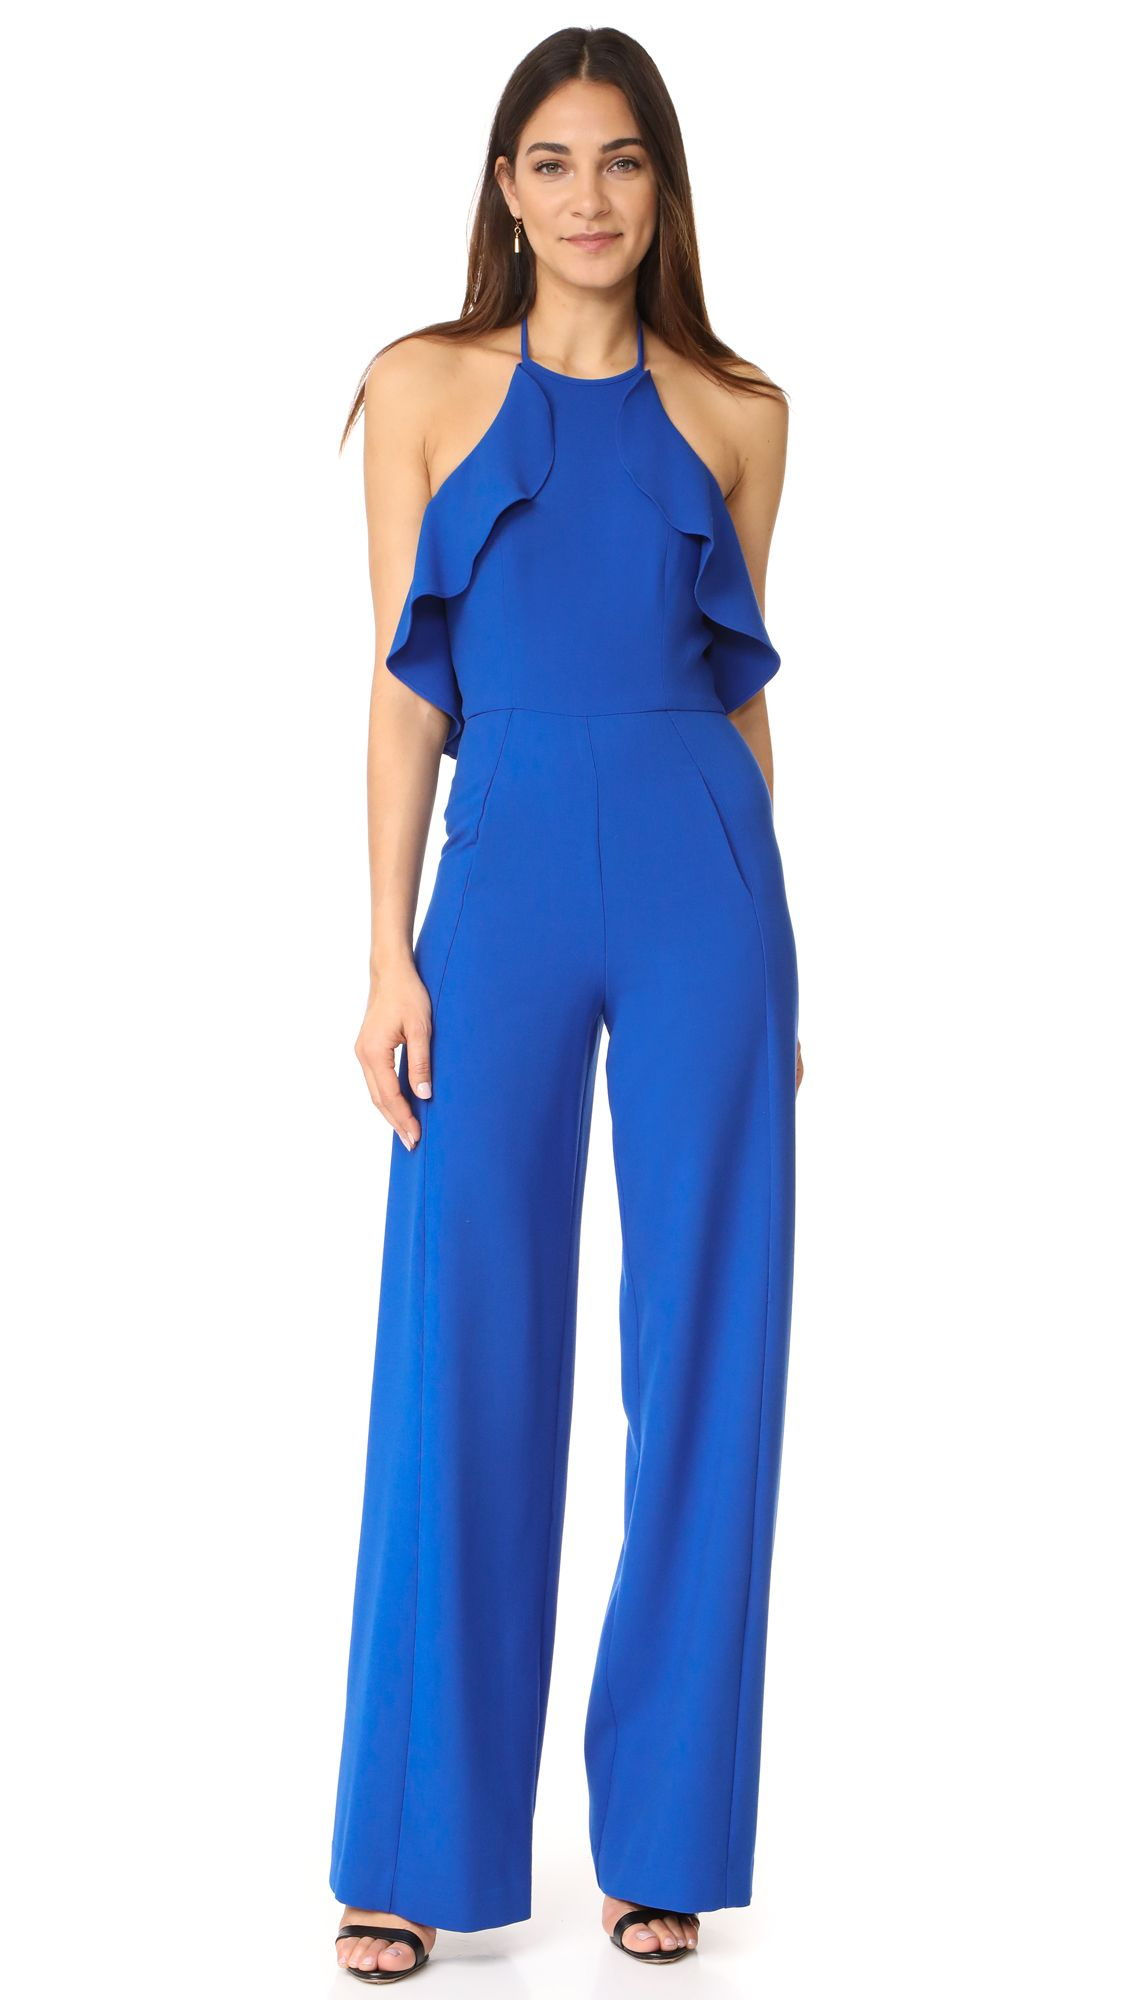 Guest at wedding dresses   Jumpsuits You Can Absolutely Wear as a Wedding Guest  Wedding